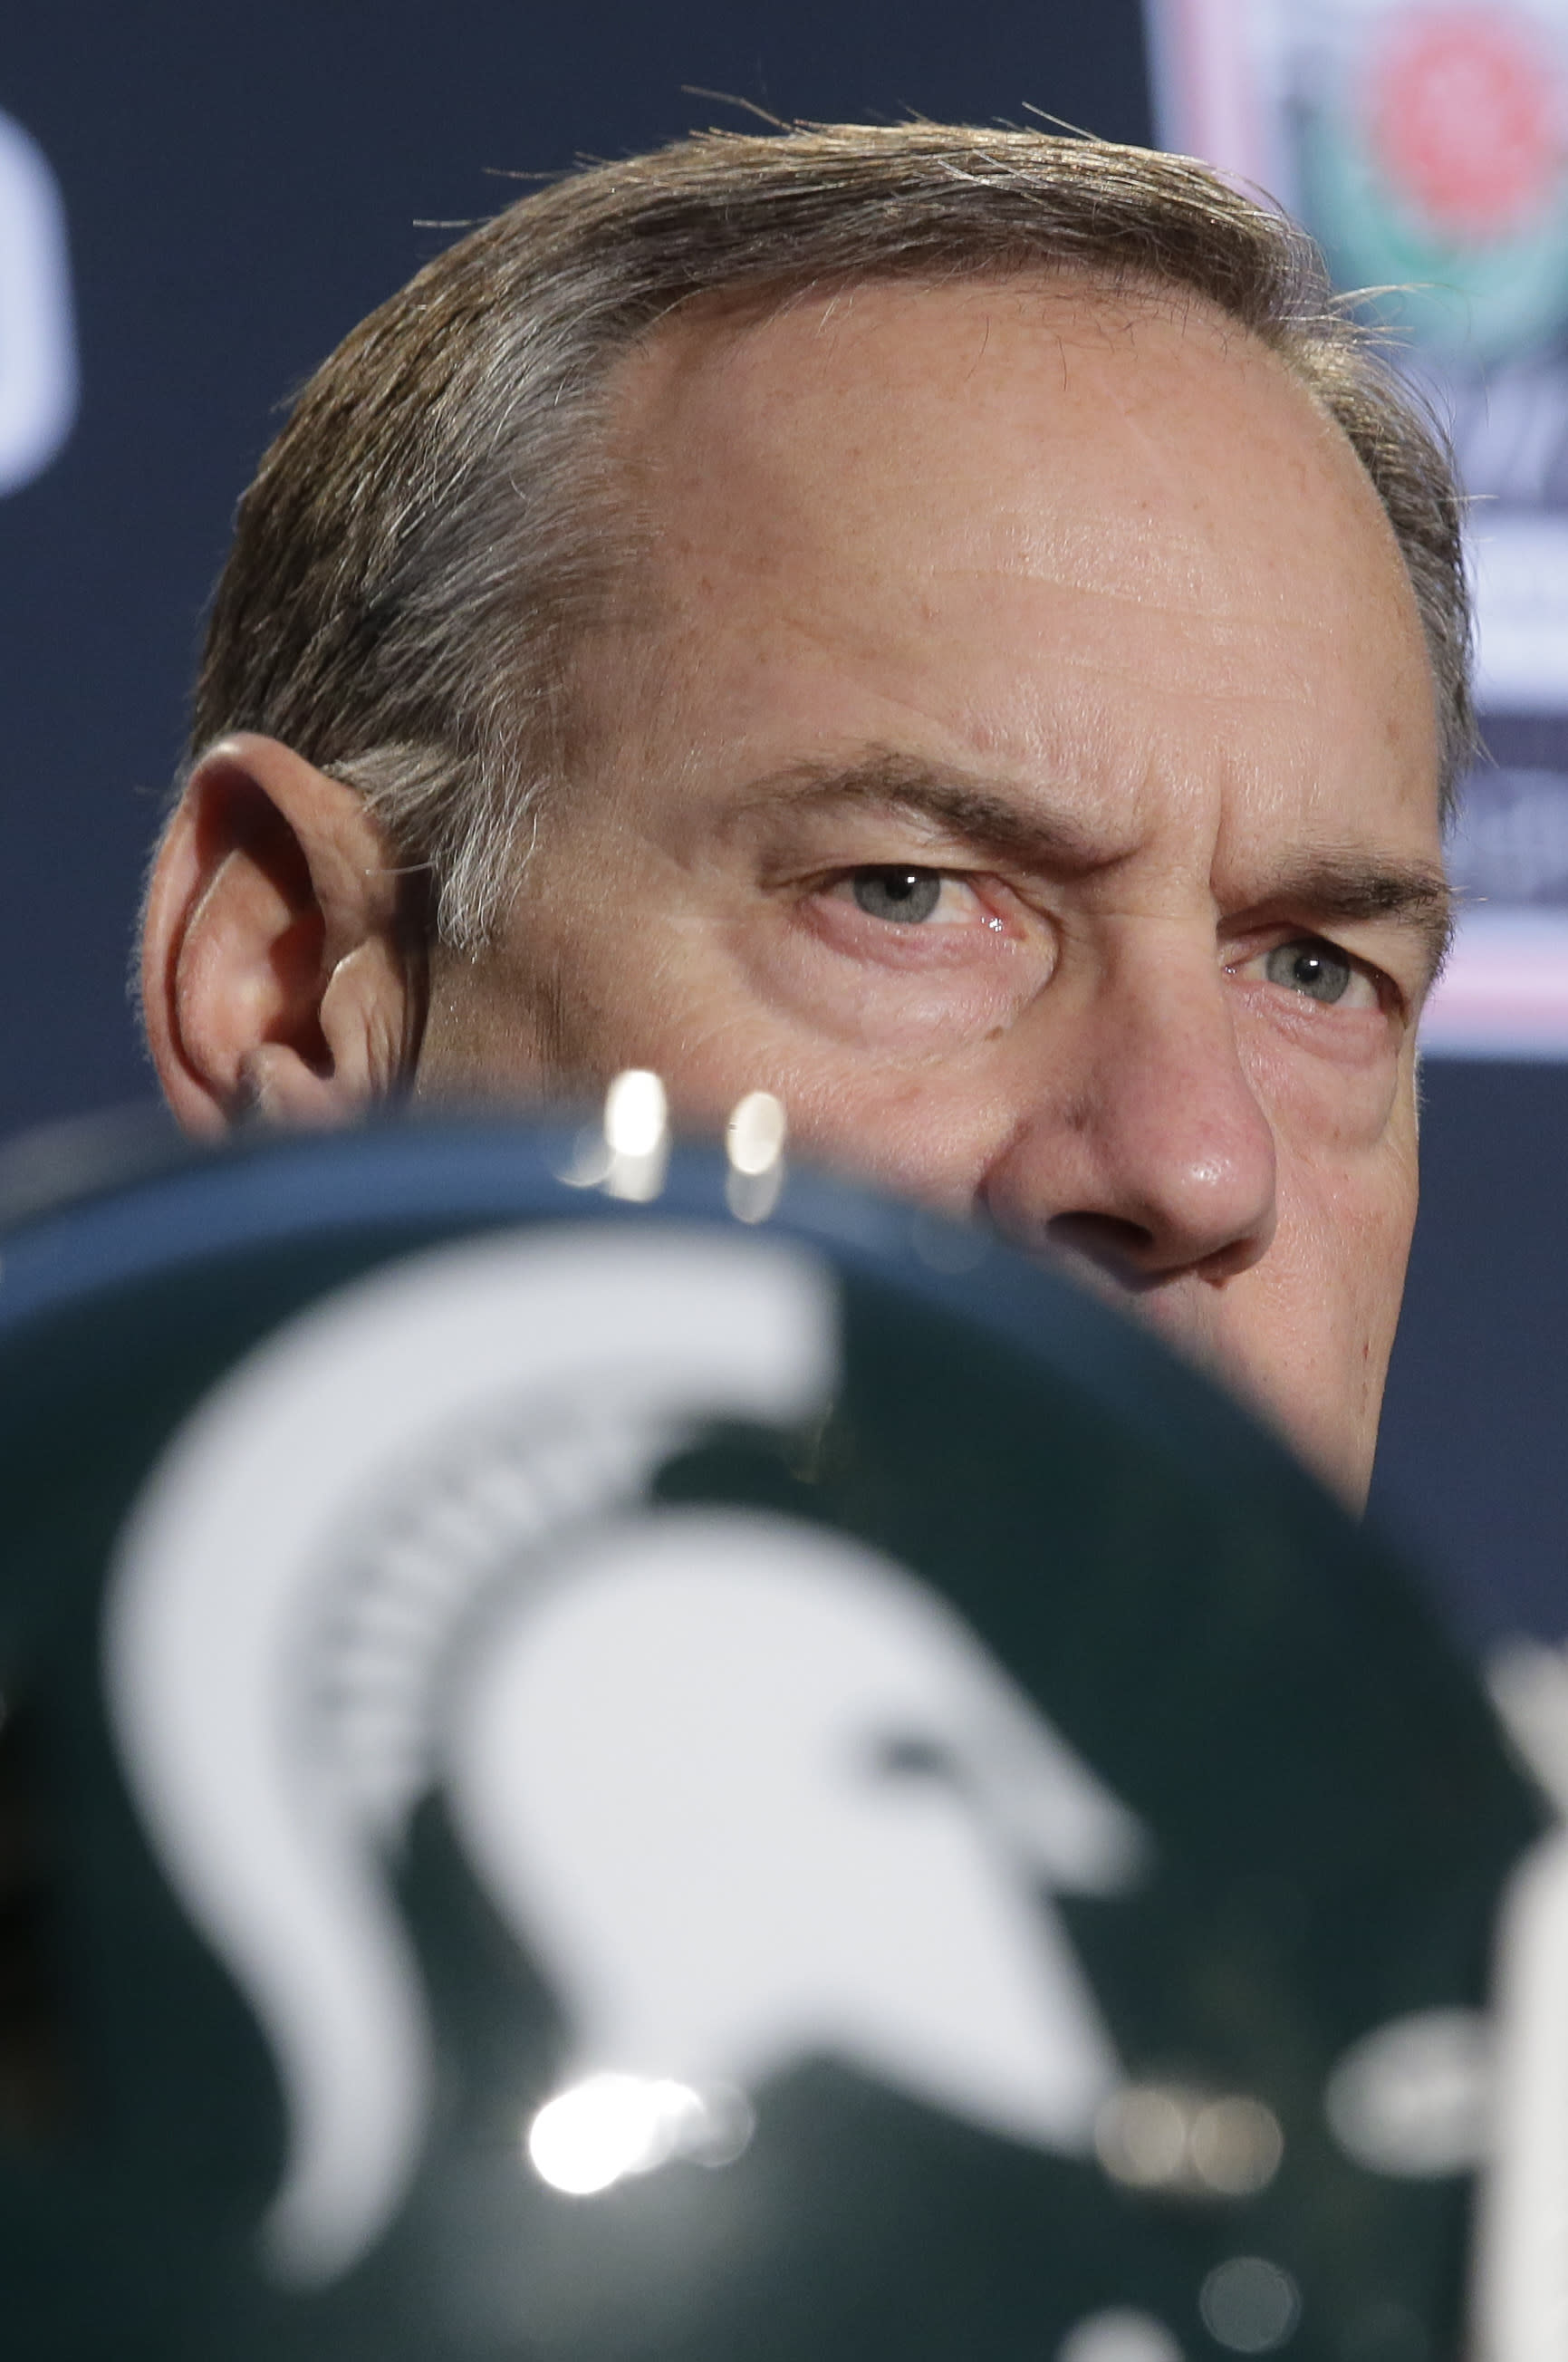 Big Ten East standard bearer Ohio St. expects no drop-off